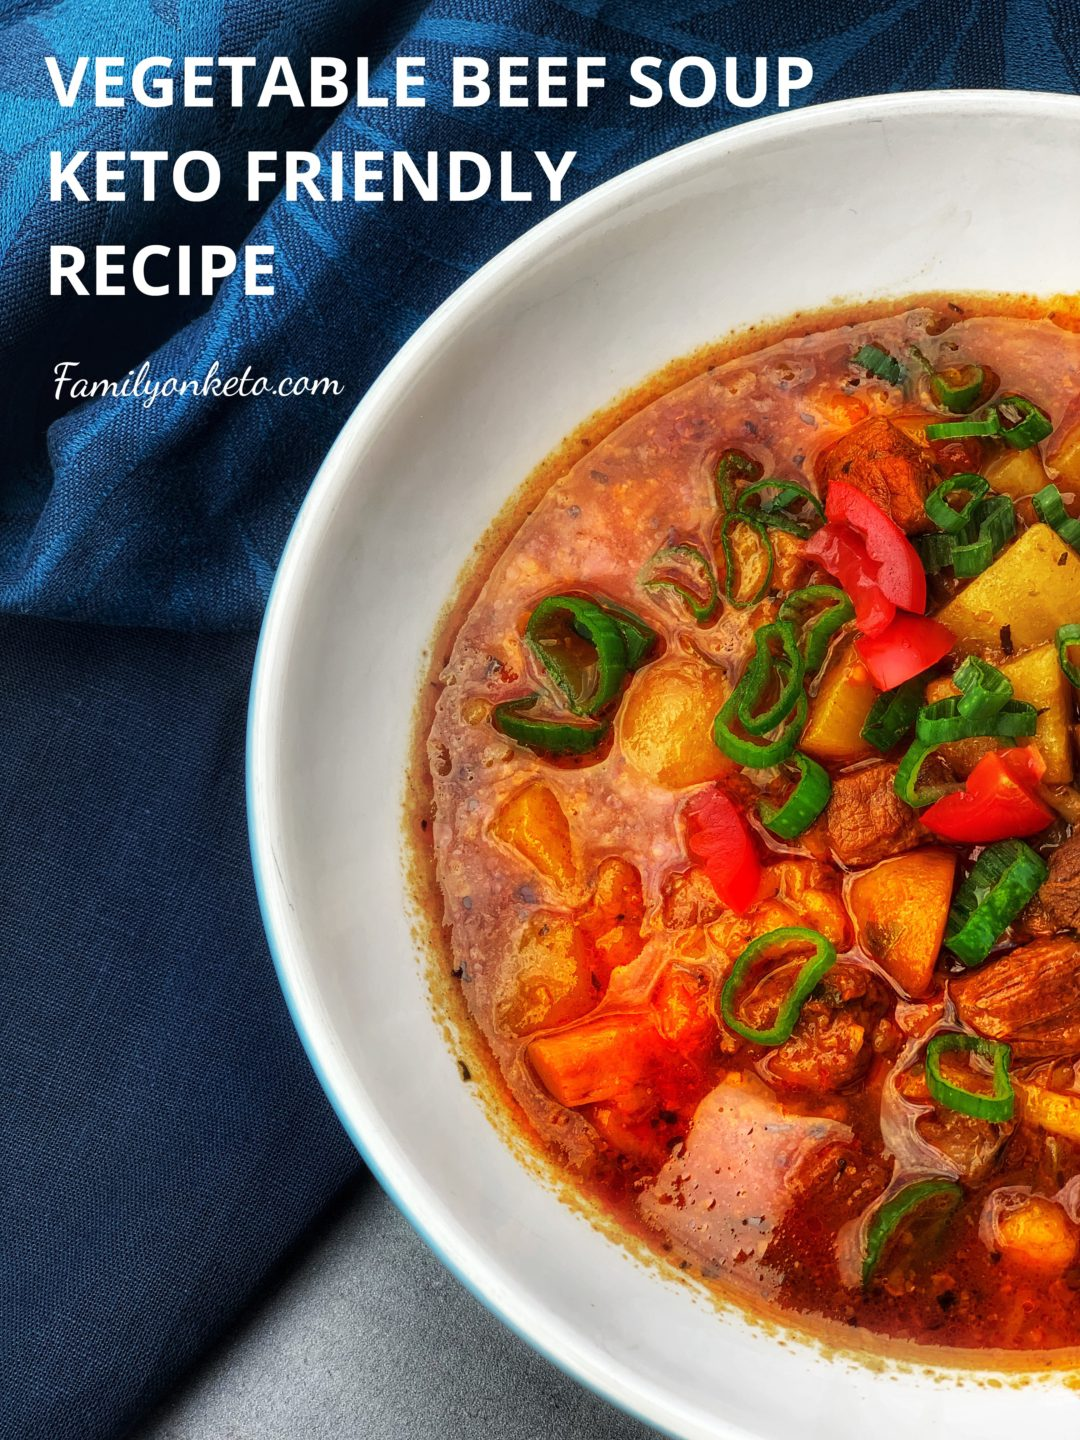 Picture of vegetable beef soup keto recipe